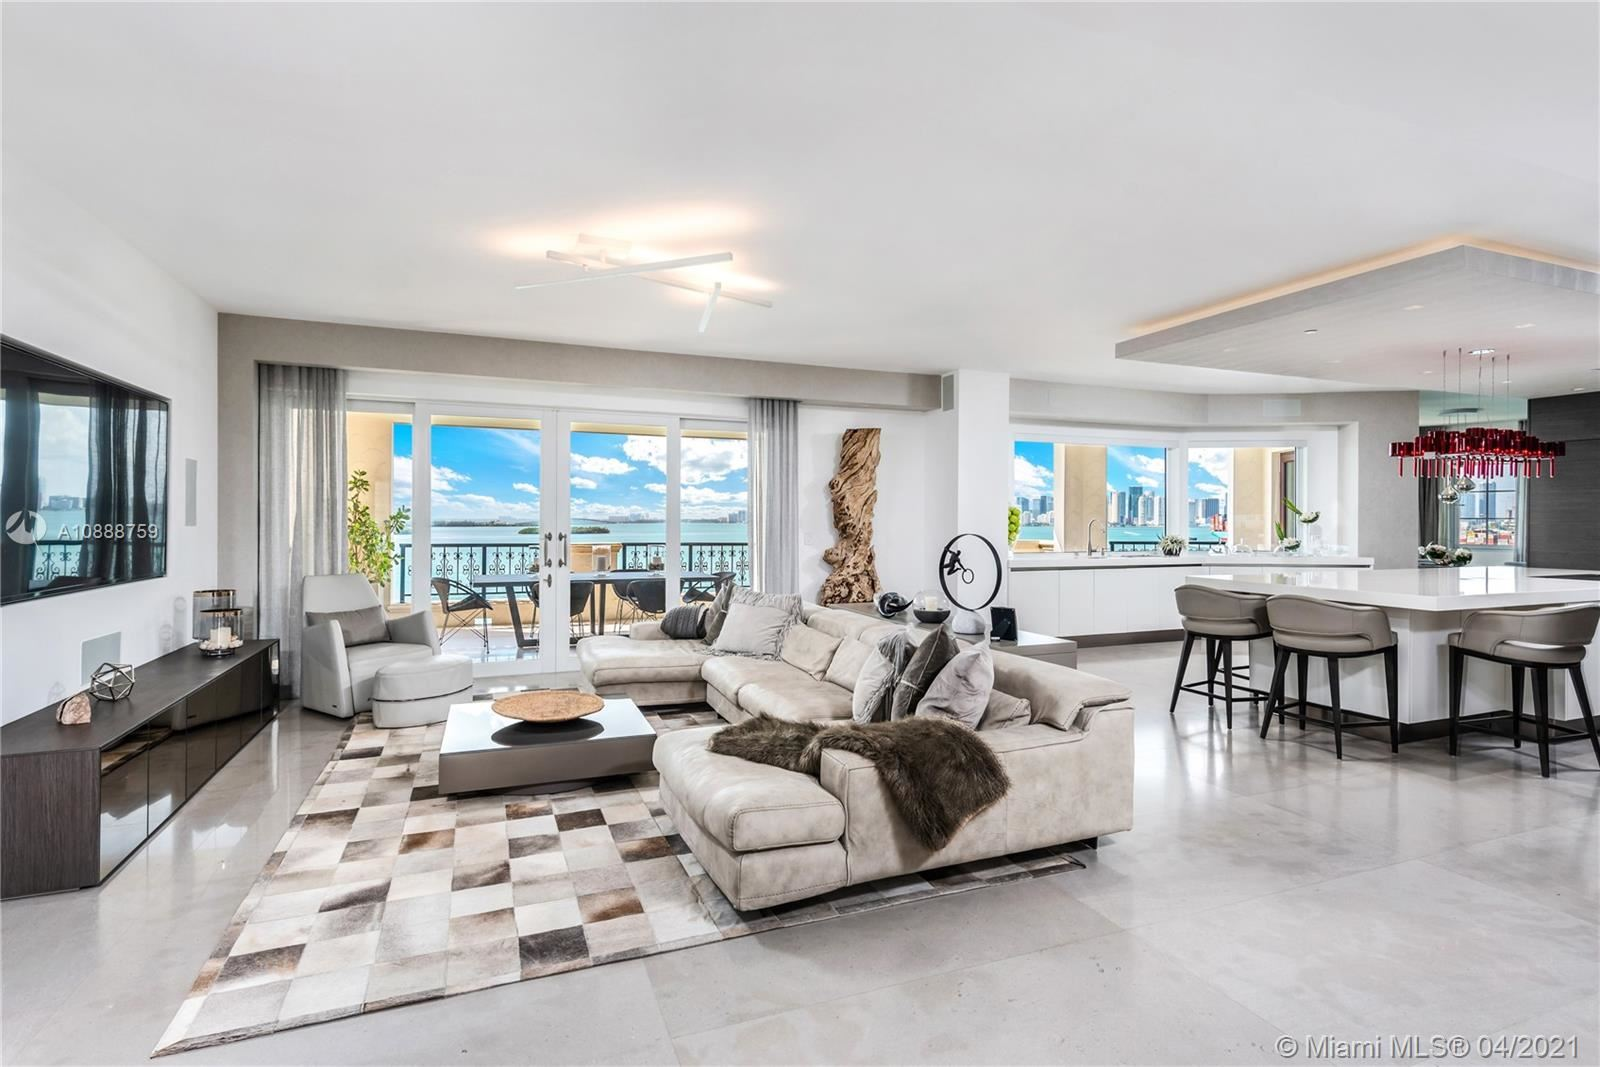 Photo 5 of Listing MLS a10888759 in 5282 Fisher Island Dr #5282 Miami FL 33109